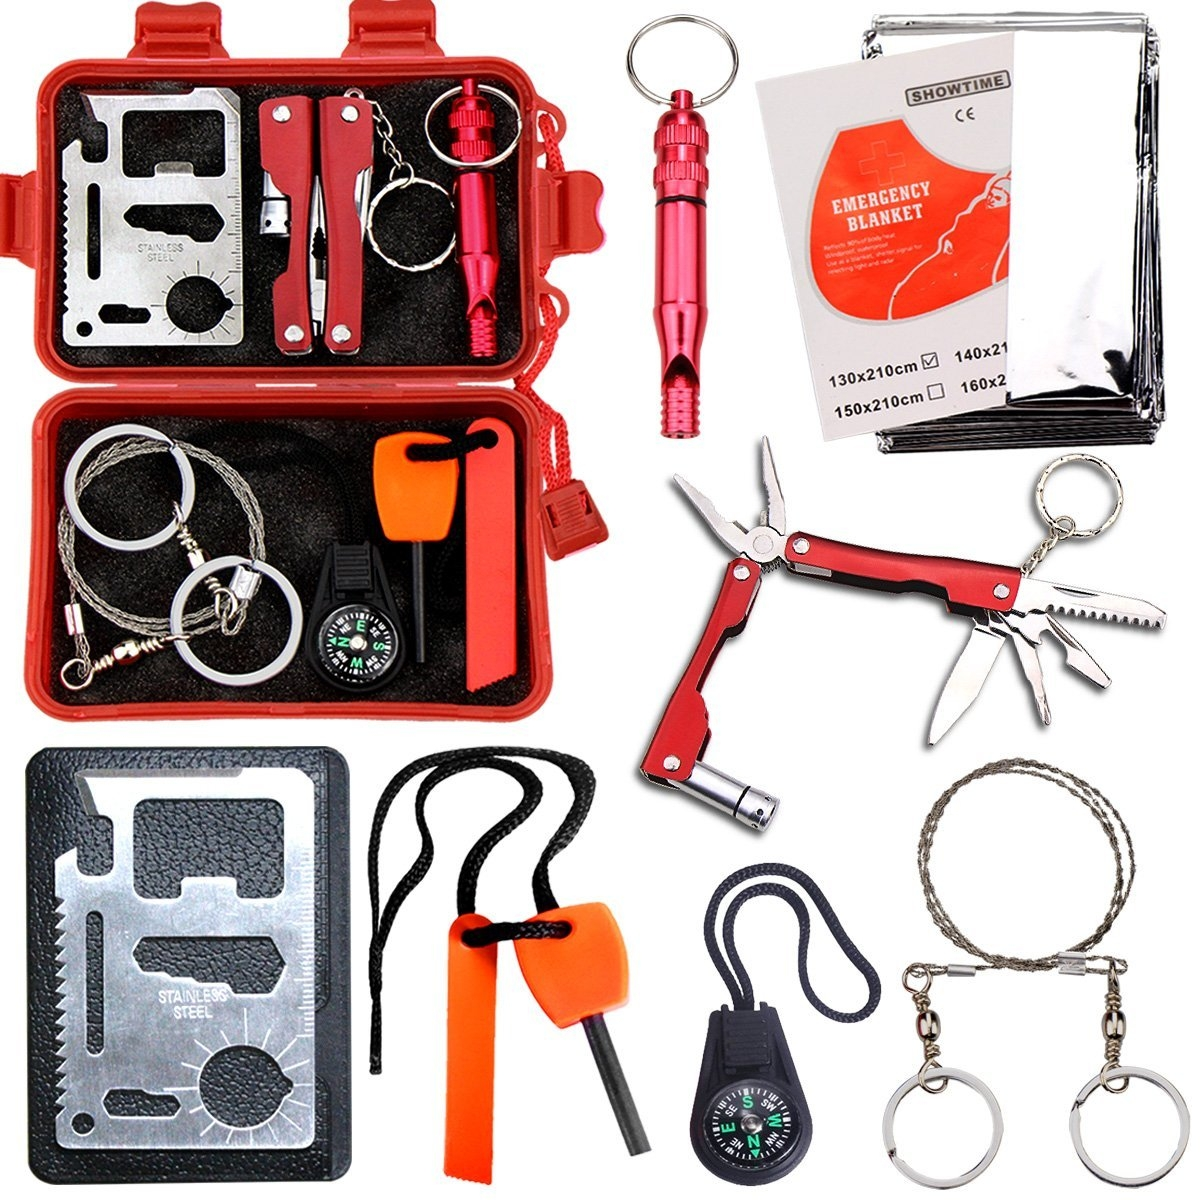 Survival Kit EMDMAK Outdoor Emergency Gear Kit for Camping Hiking Travelling or Adventures by